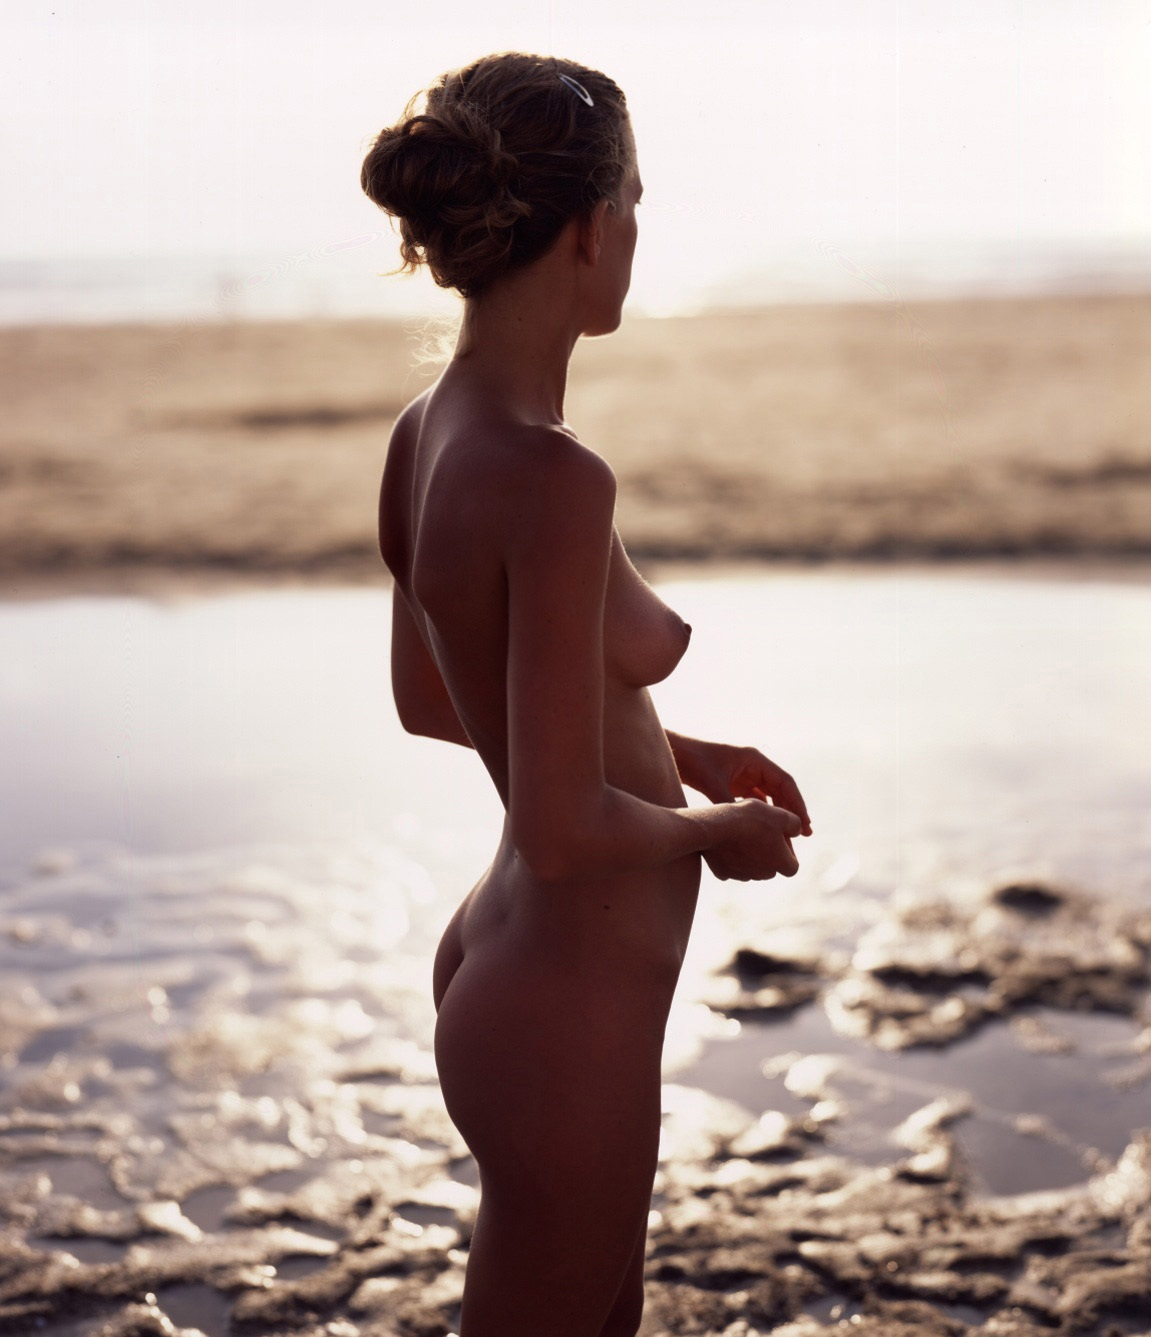 Nude hottie on an empty beach watching sunset